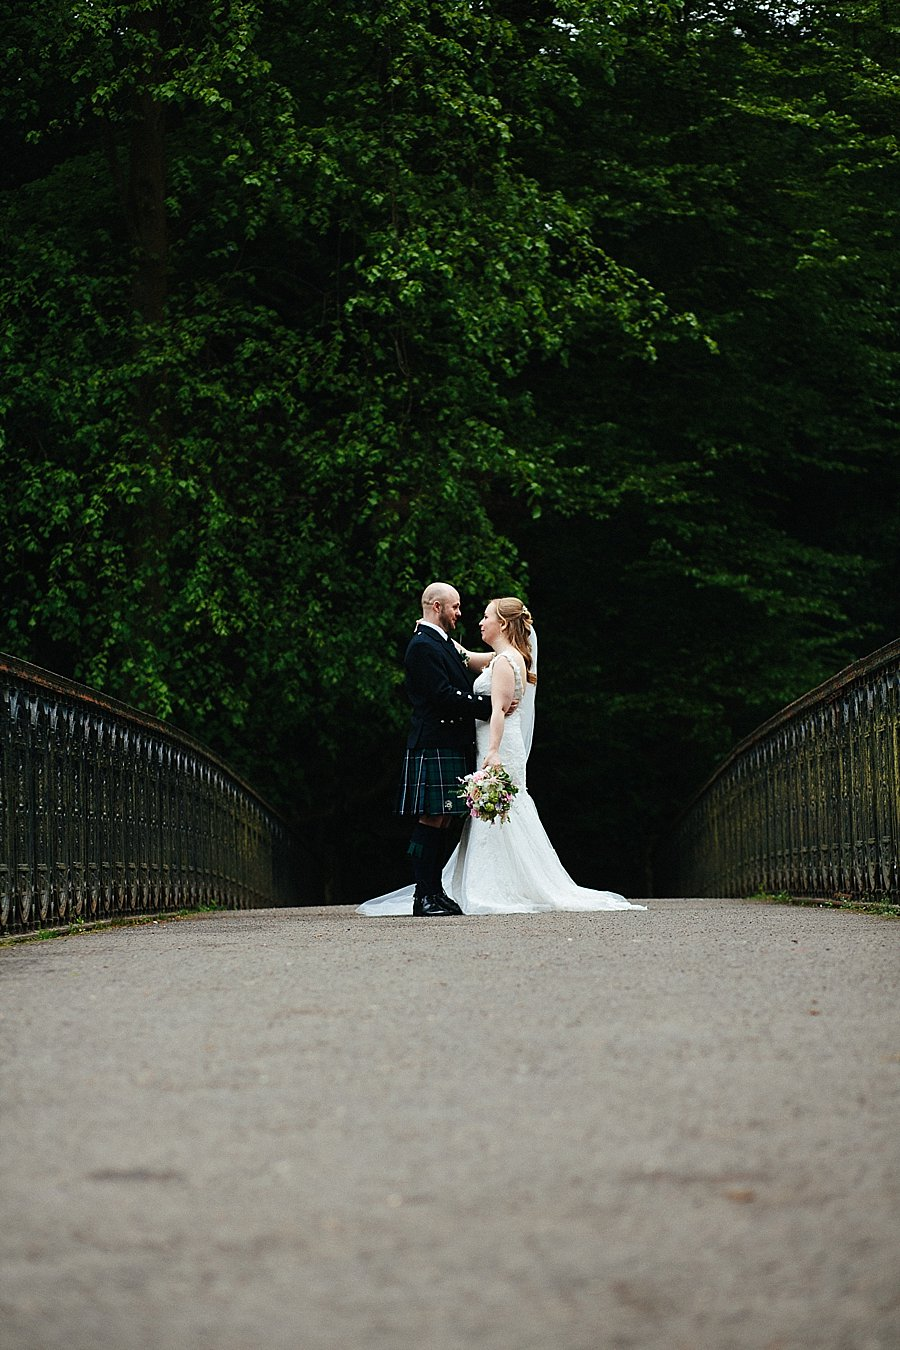 Nicola_Fraser_Cottiers Wedding_046